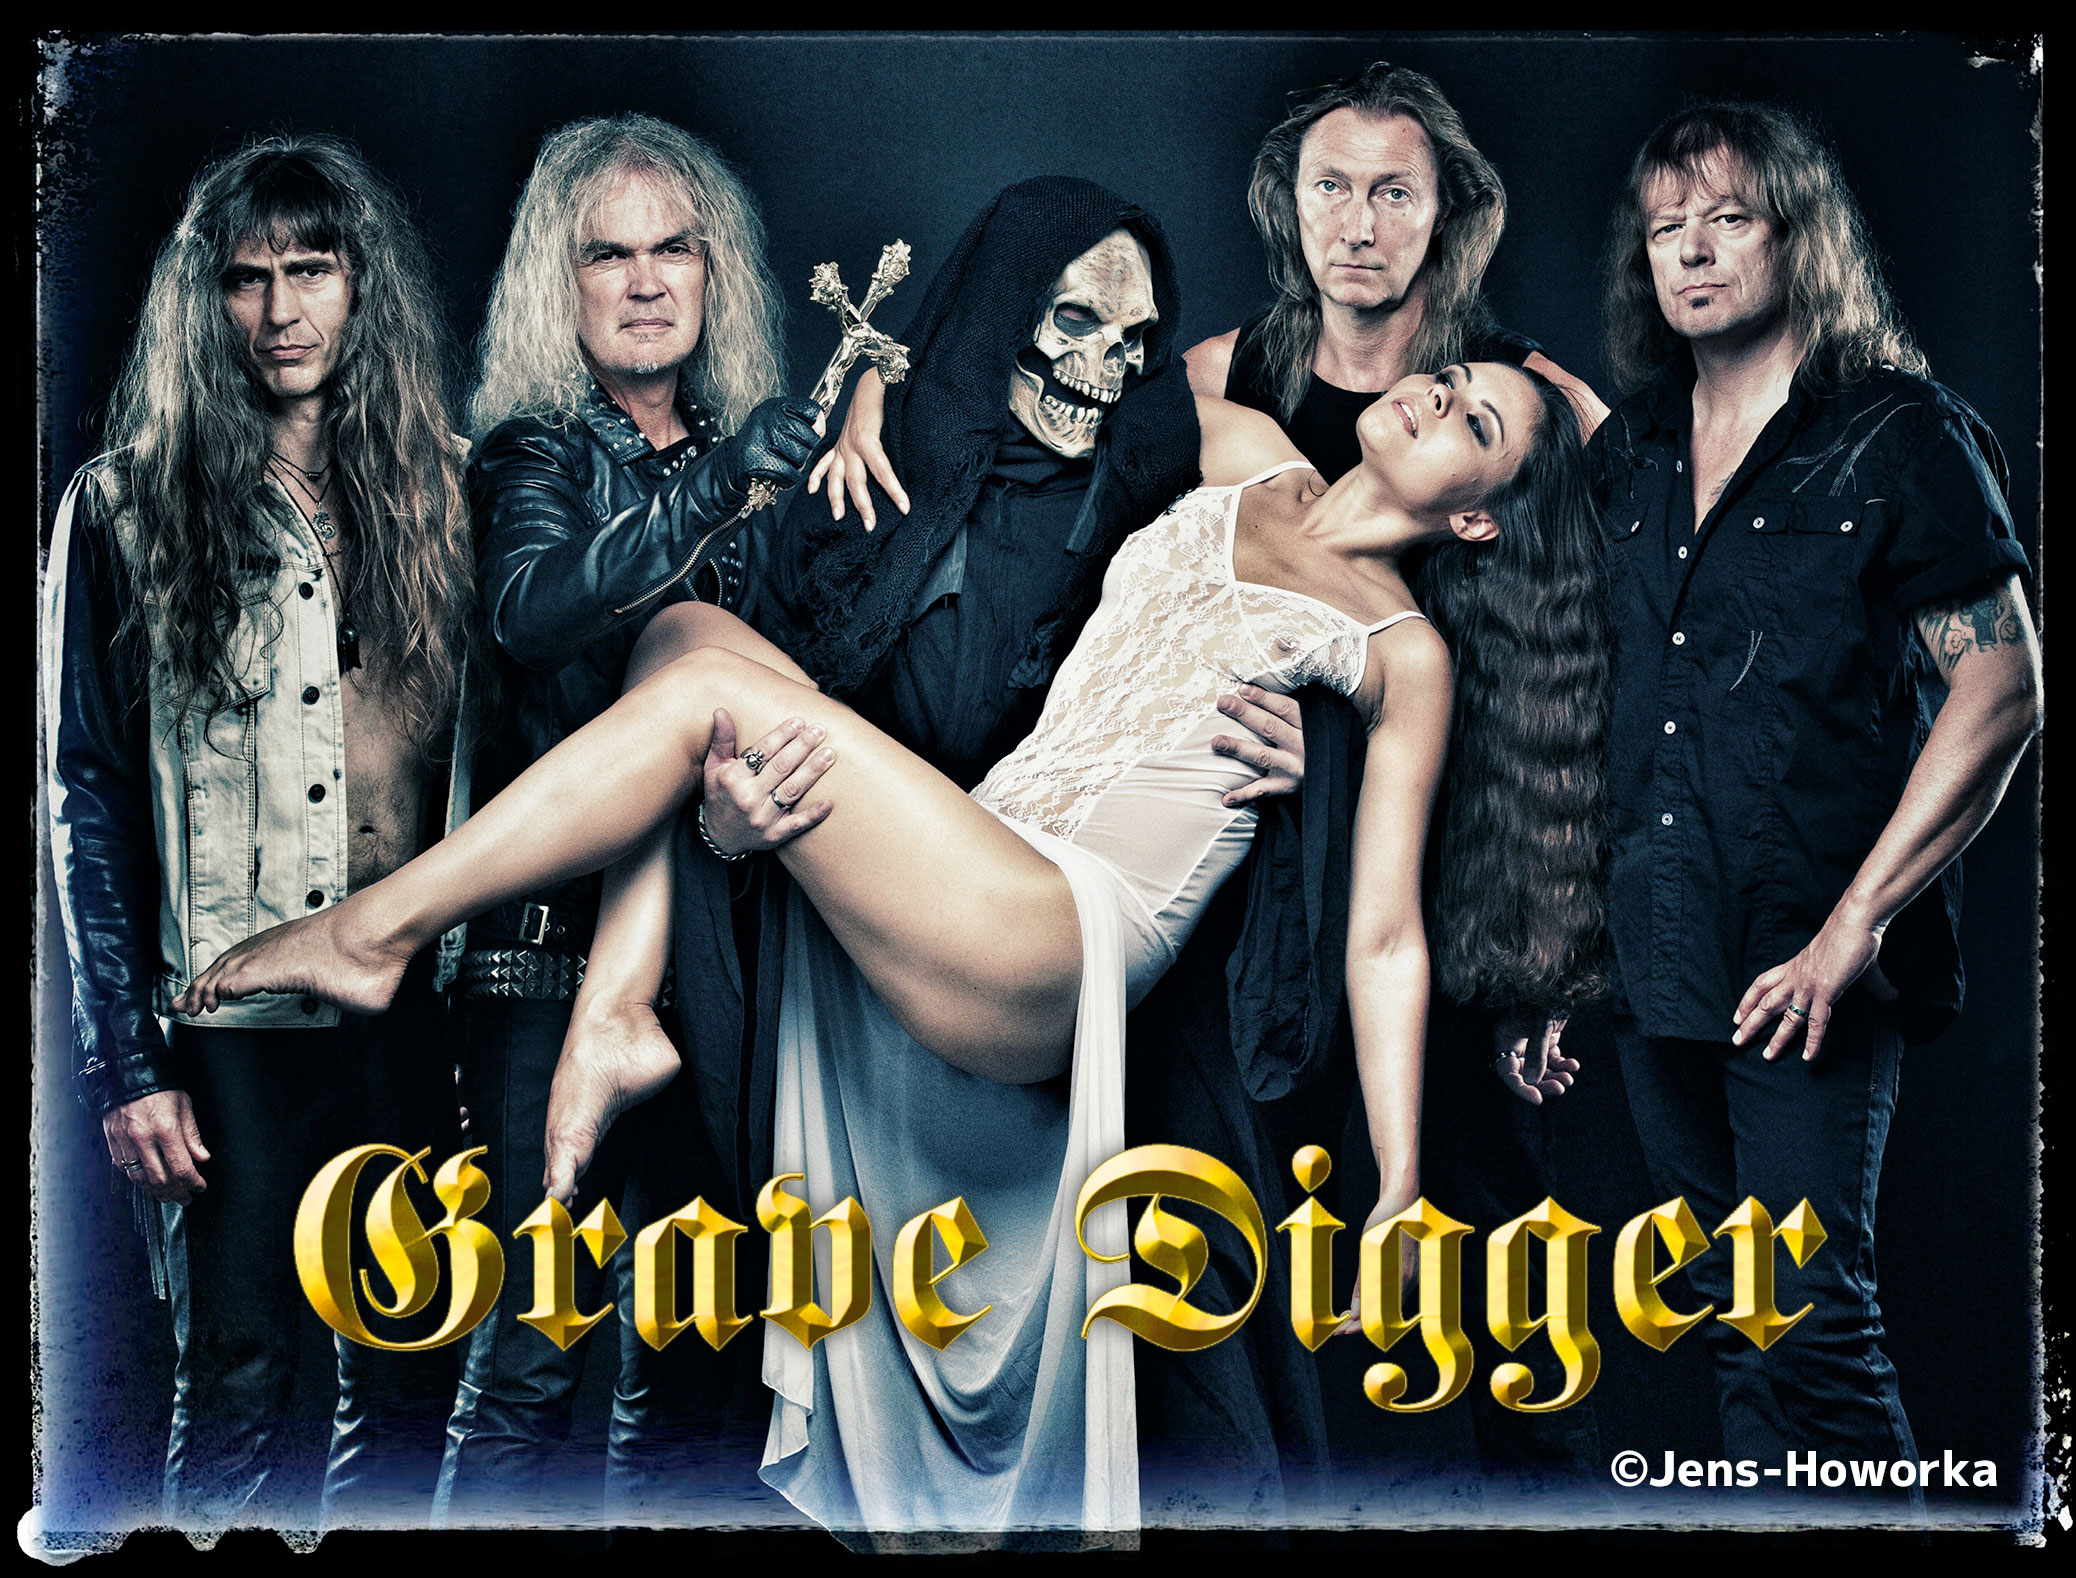 Grave Digger photo by Jens-Howorka